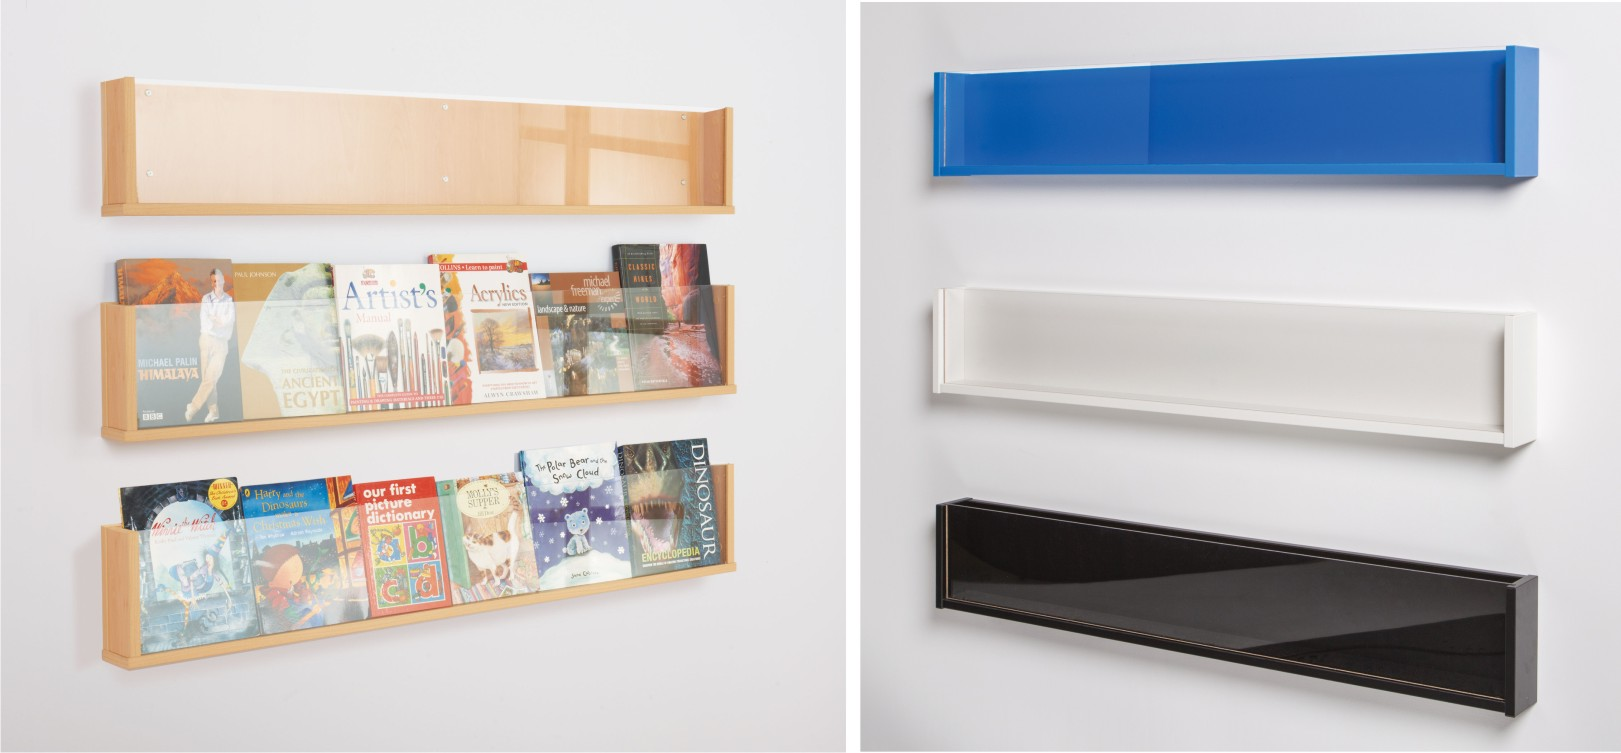 Shelf Style Wall Mounted Literature Display